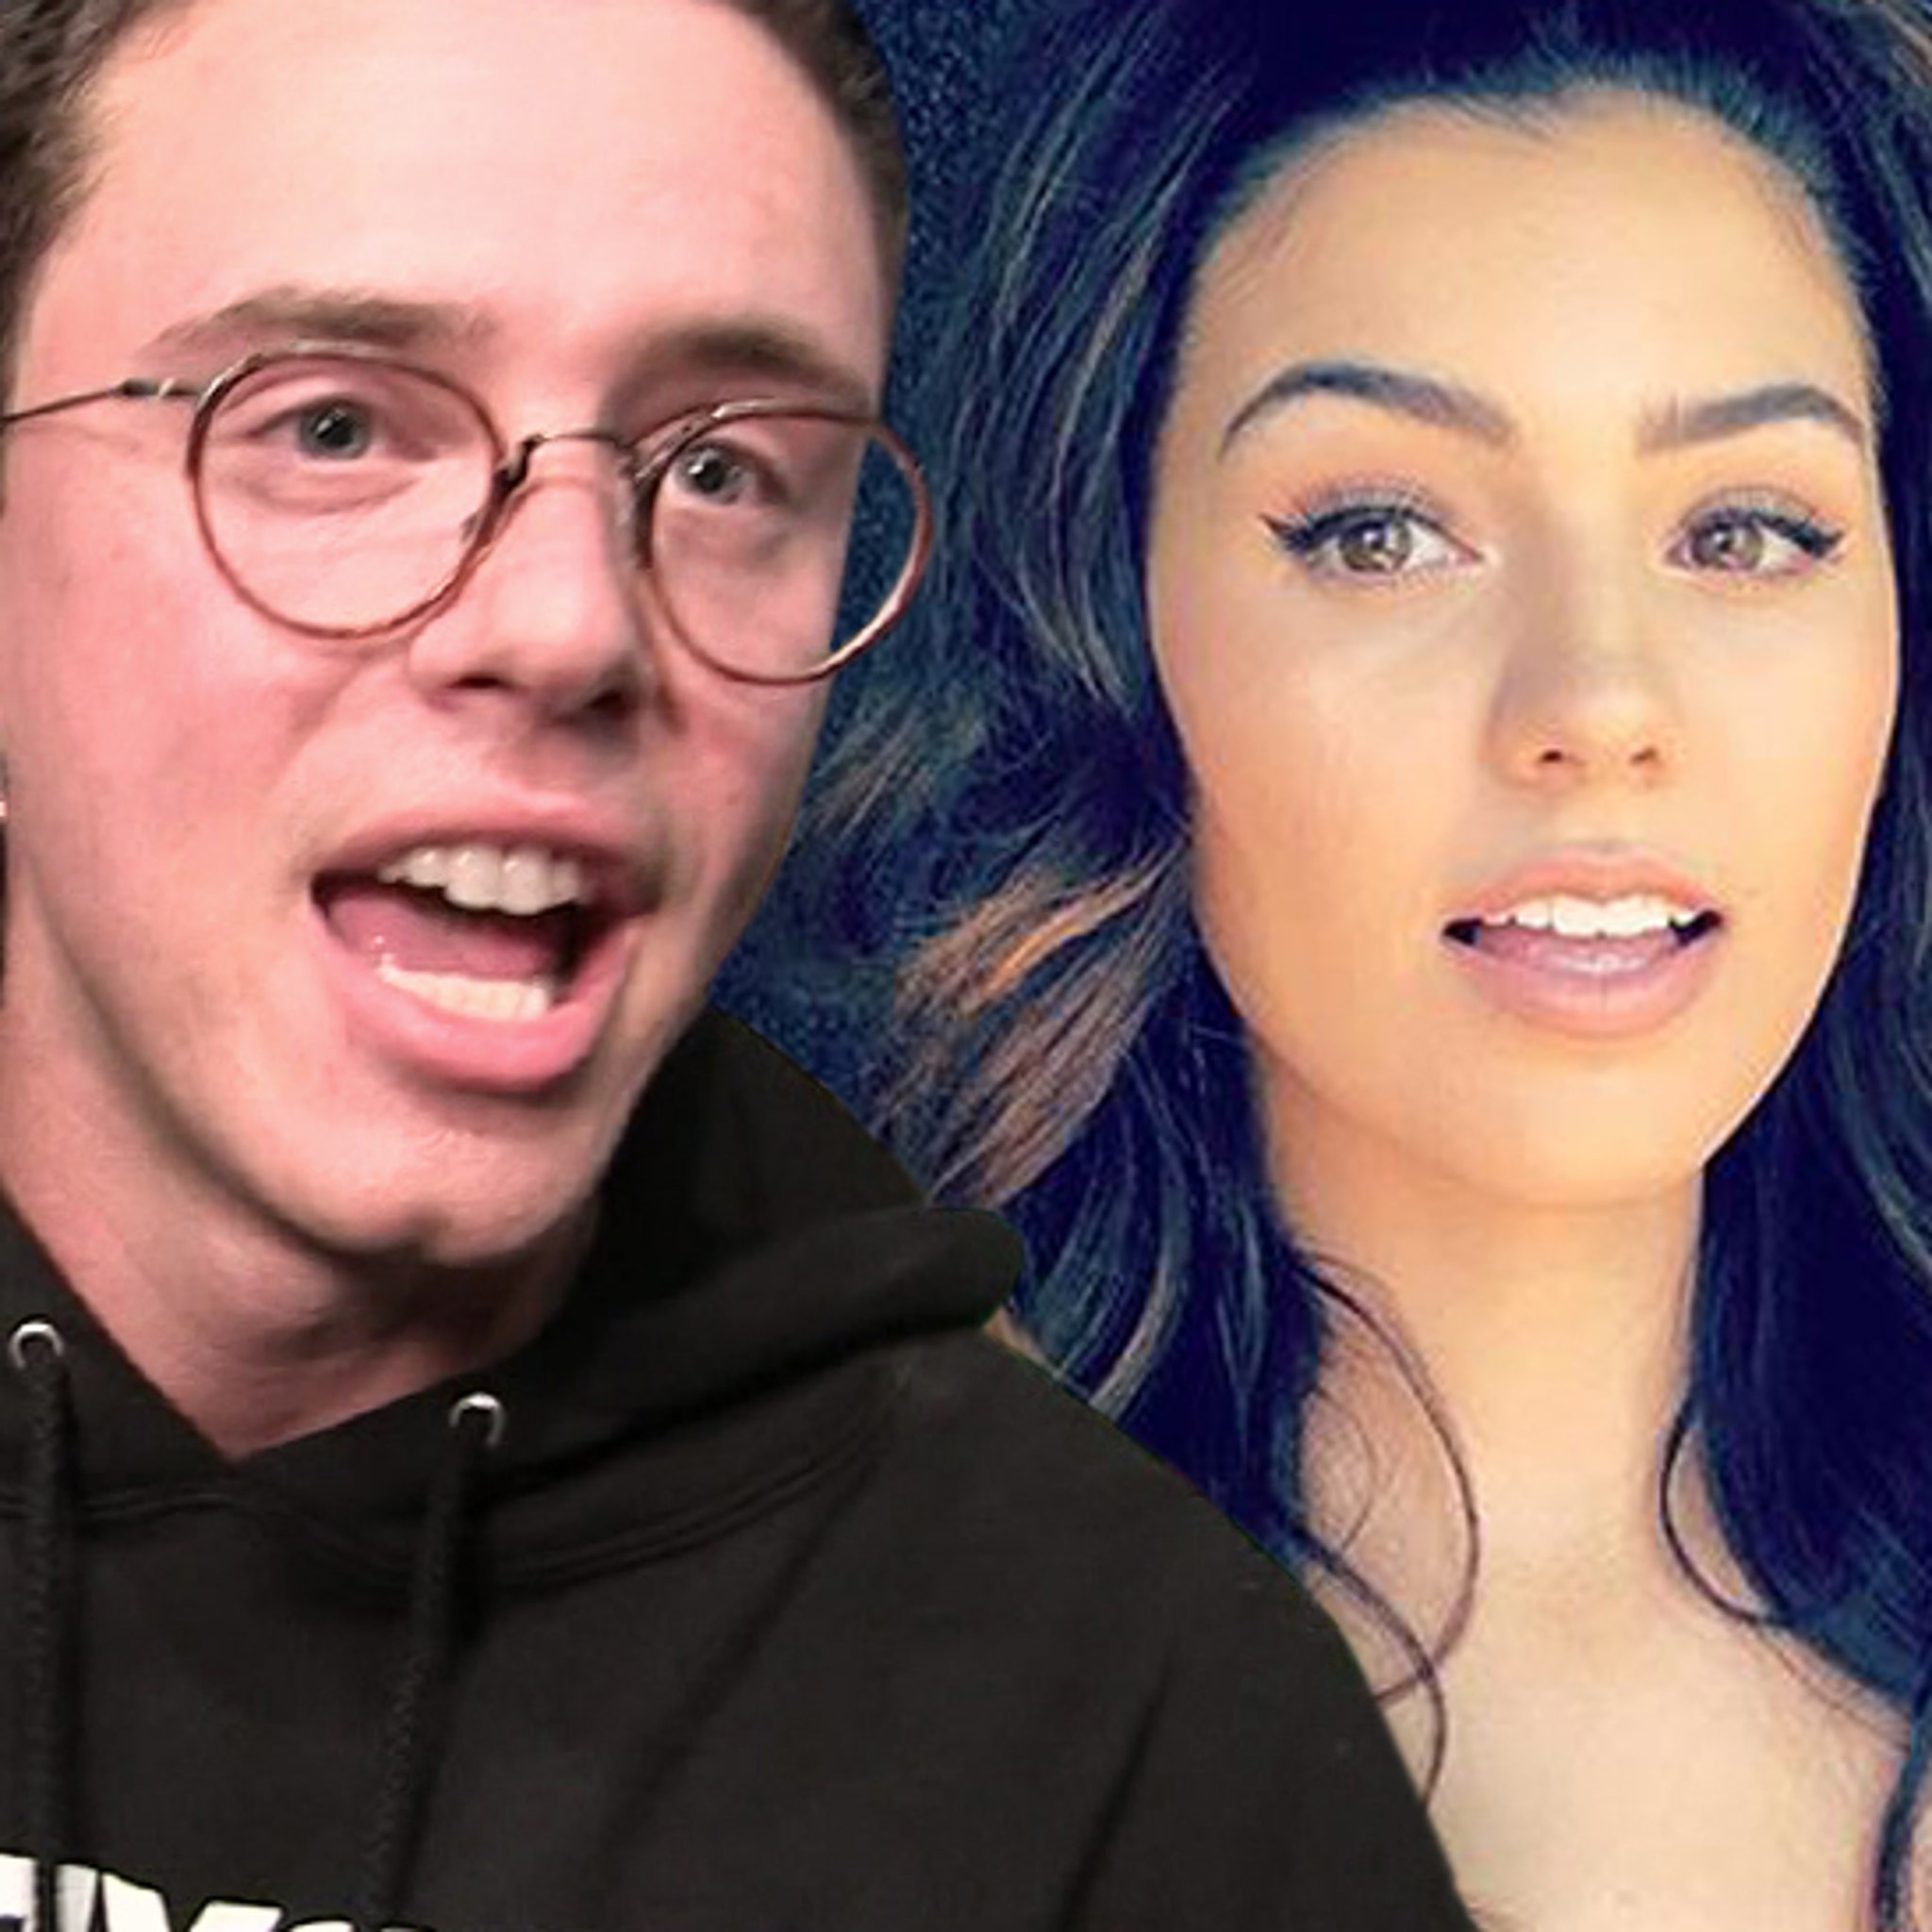 Logic Officially Divorced, He Gets the House and She Gets